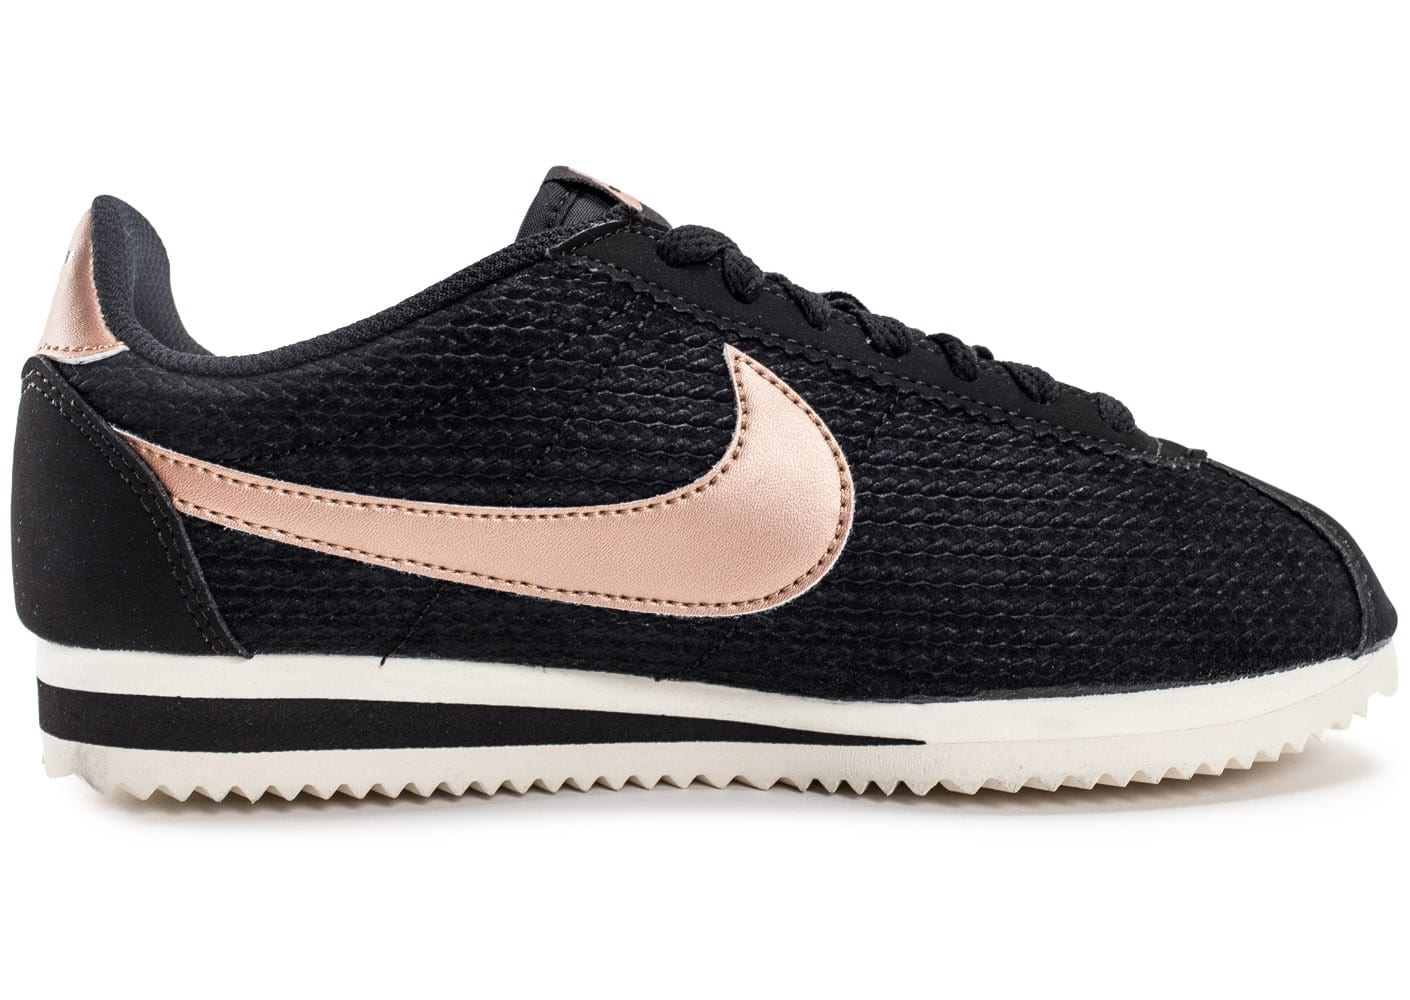 nike cortez leather se bronze chaussures toutes les baskets sold es chausport. Black Bedroom Furniture Sets. Home Design Ideas